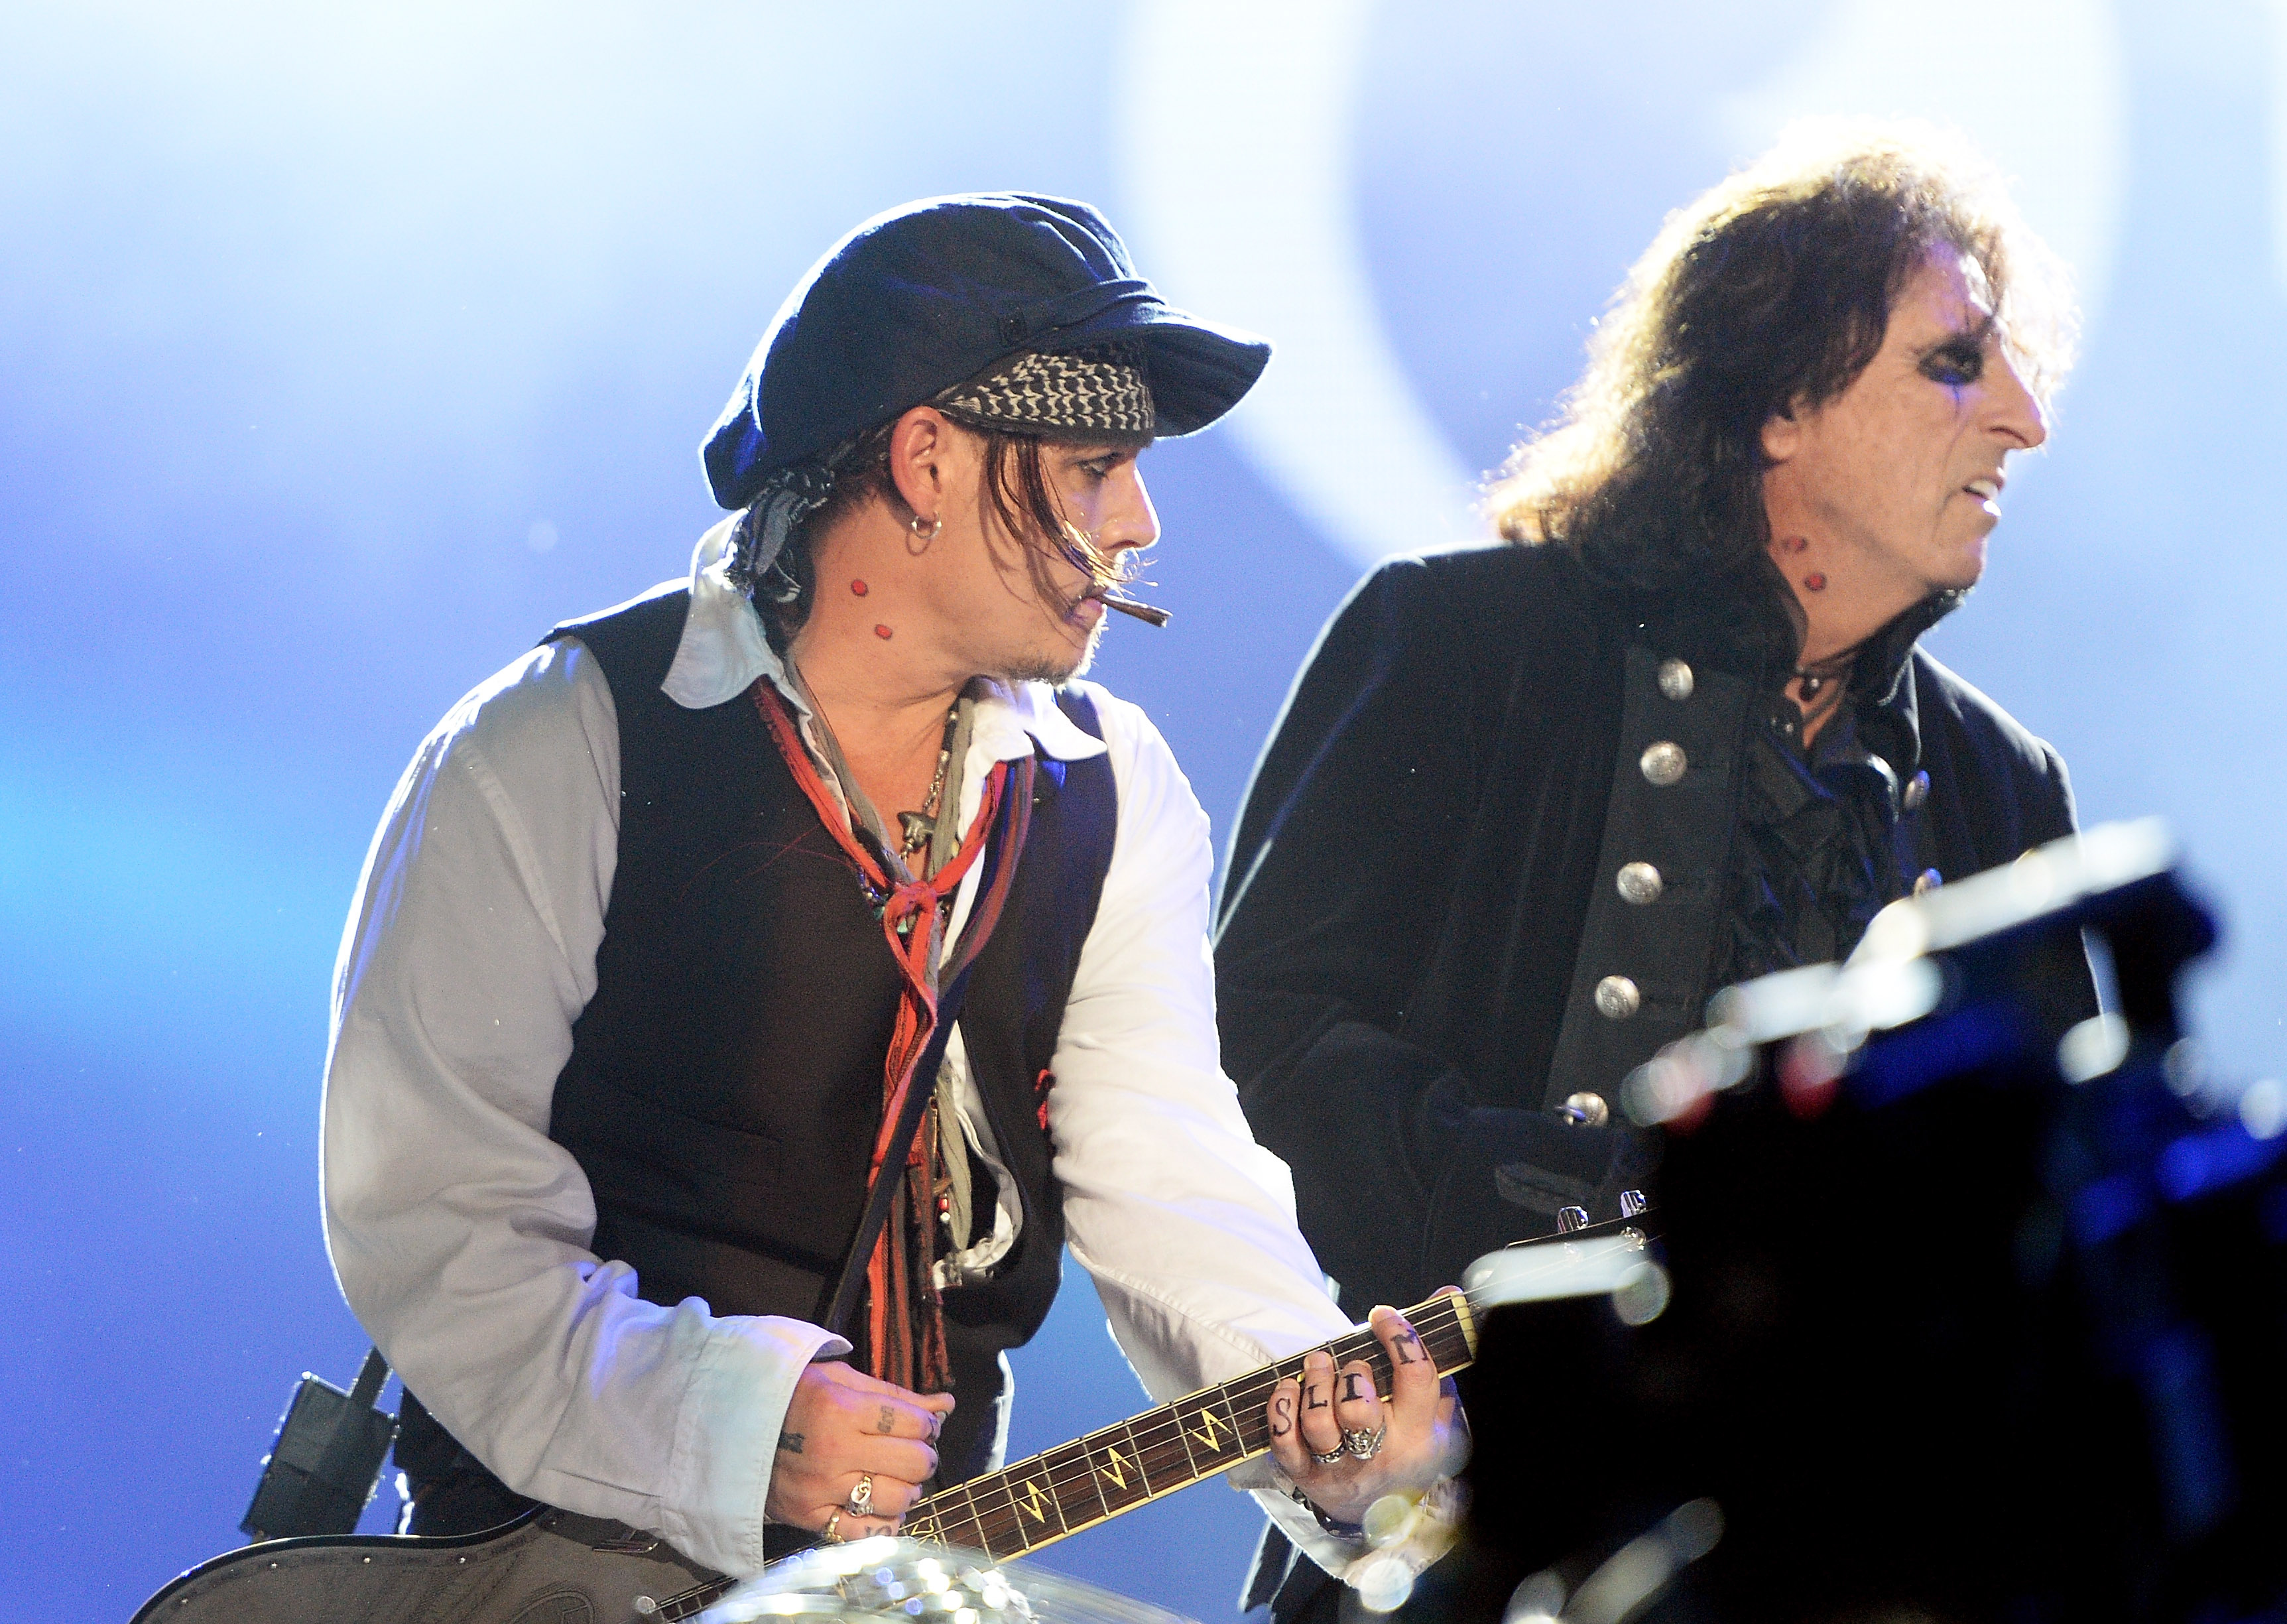 Alice Cooper (R) and Johnny Depp perform with The Hollywood Vampires during Rock in Rio on Sep. 24, 2015, in Rio de Janeiro, Brazil